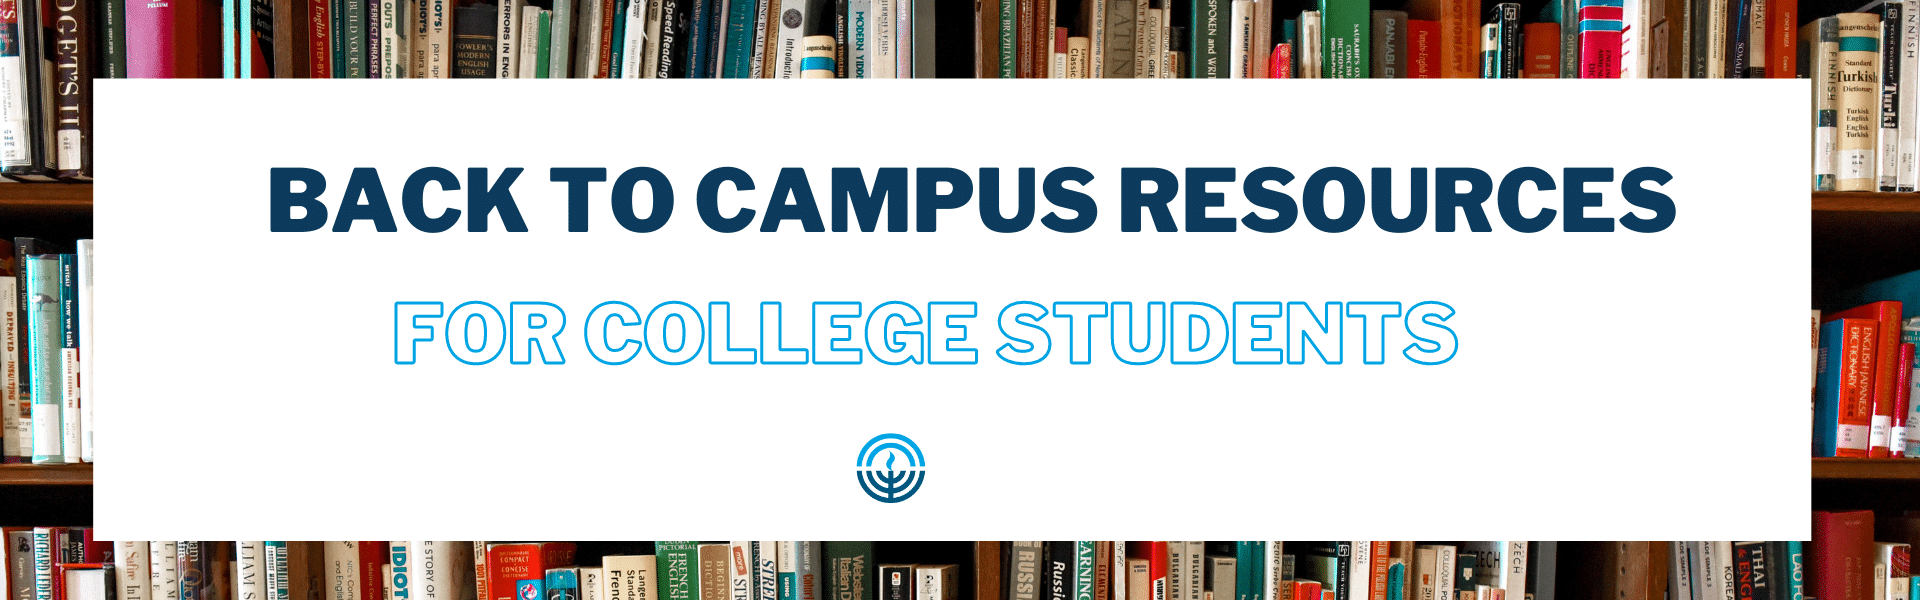 Back To Campus Resources For College Students!